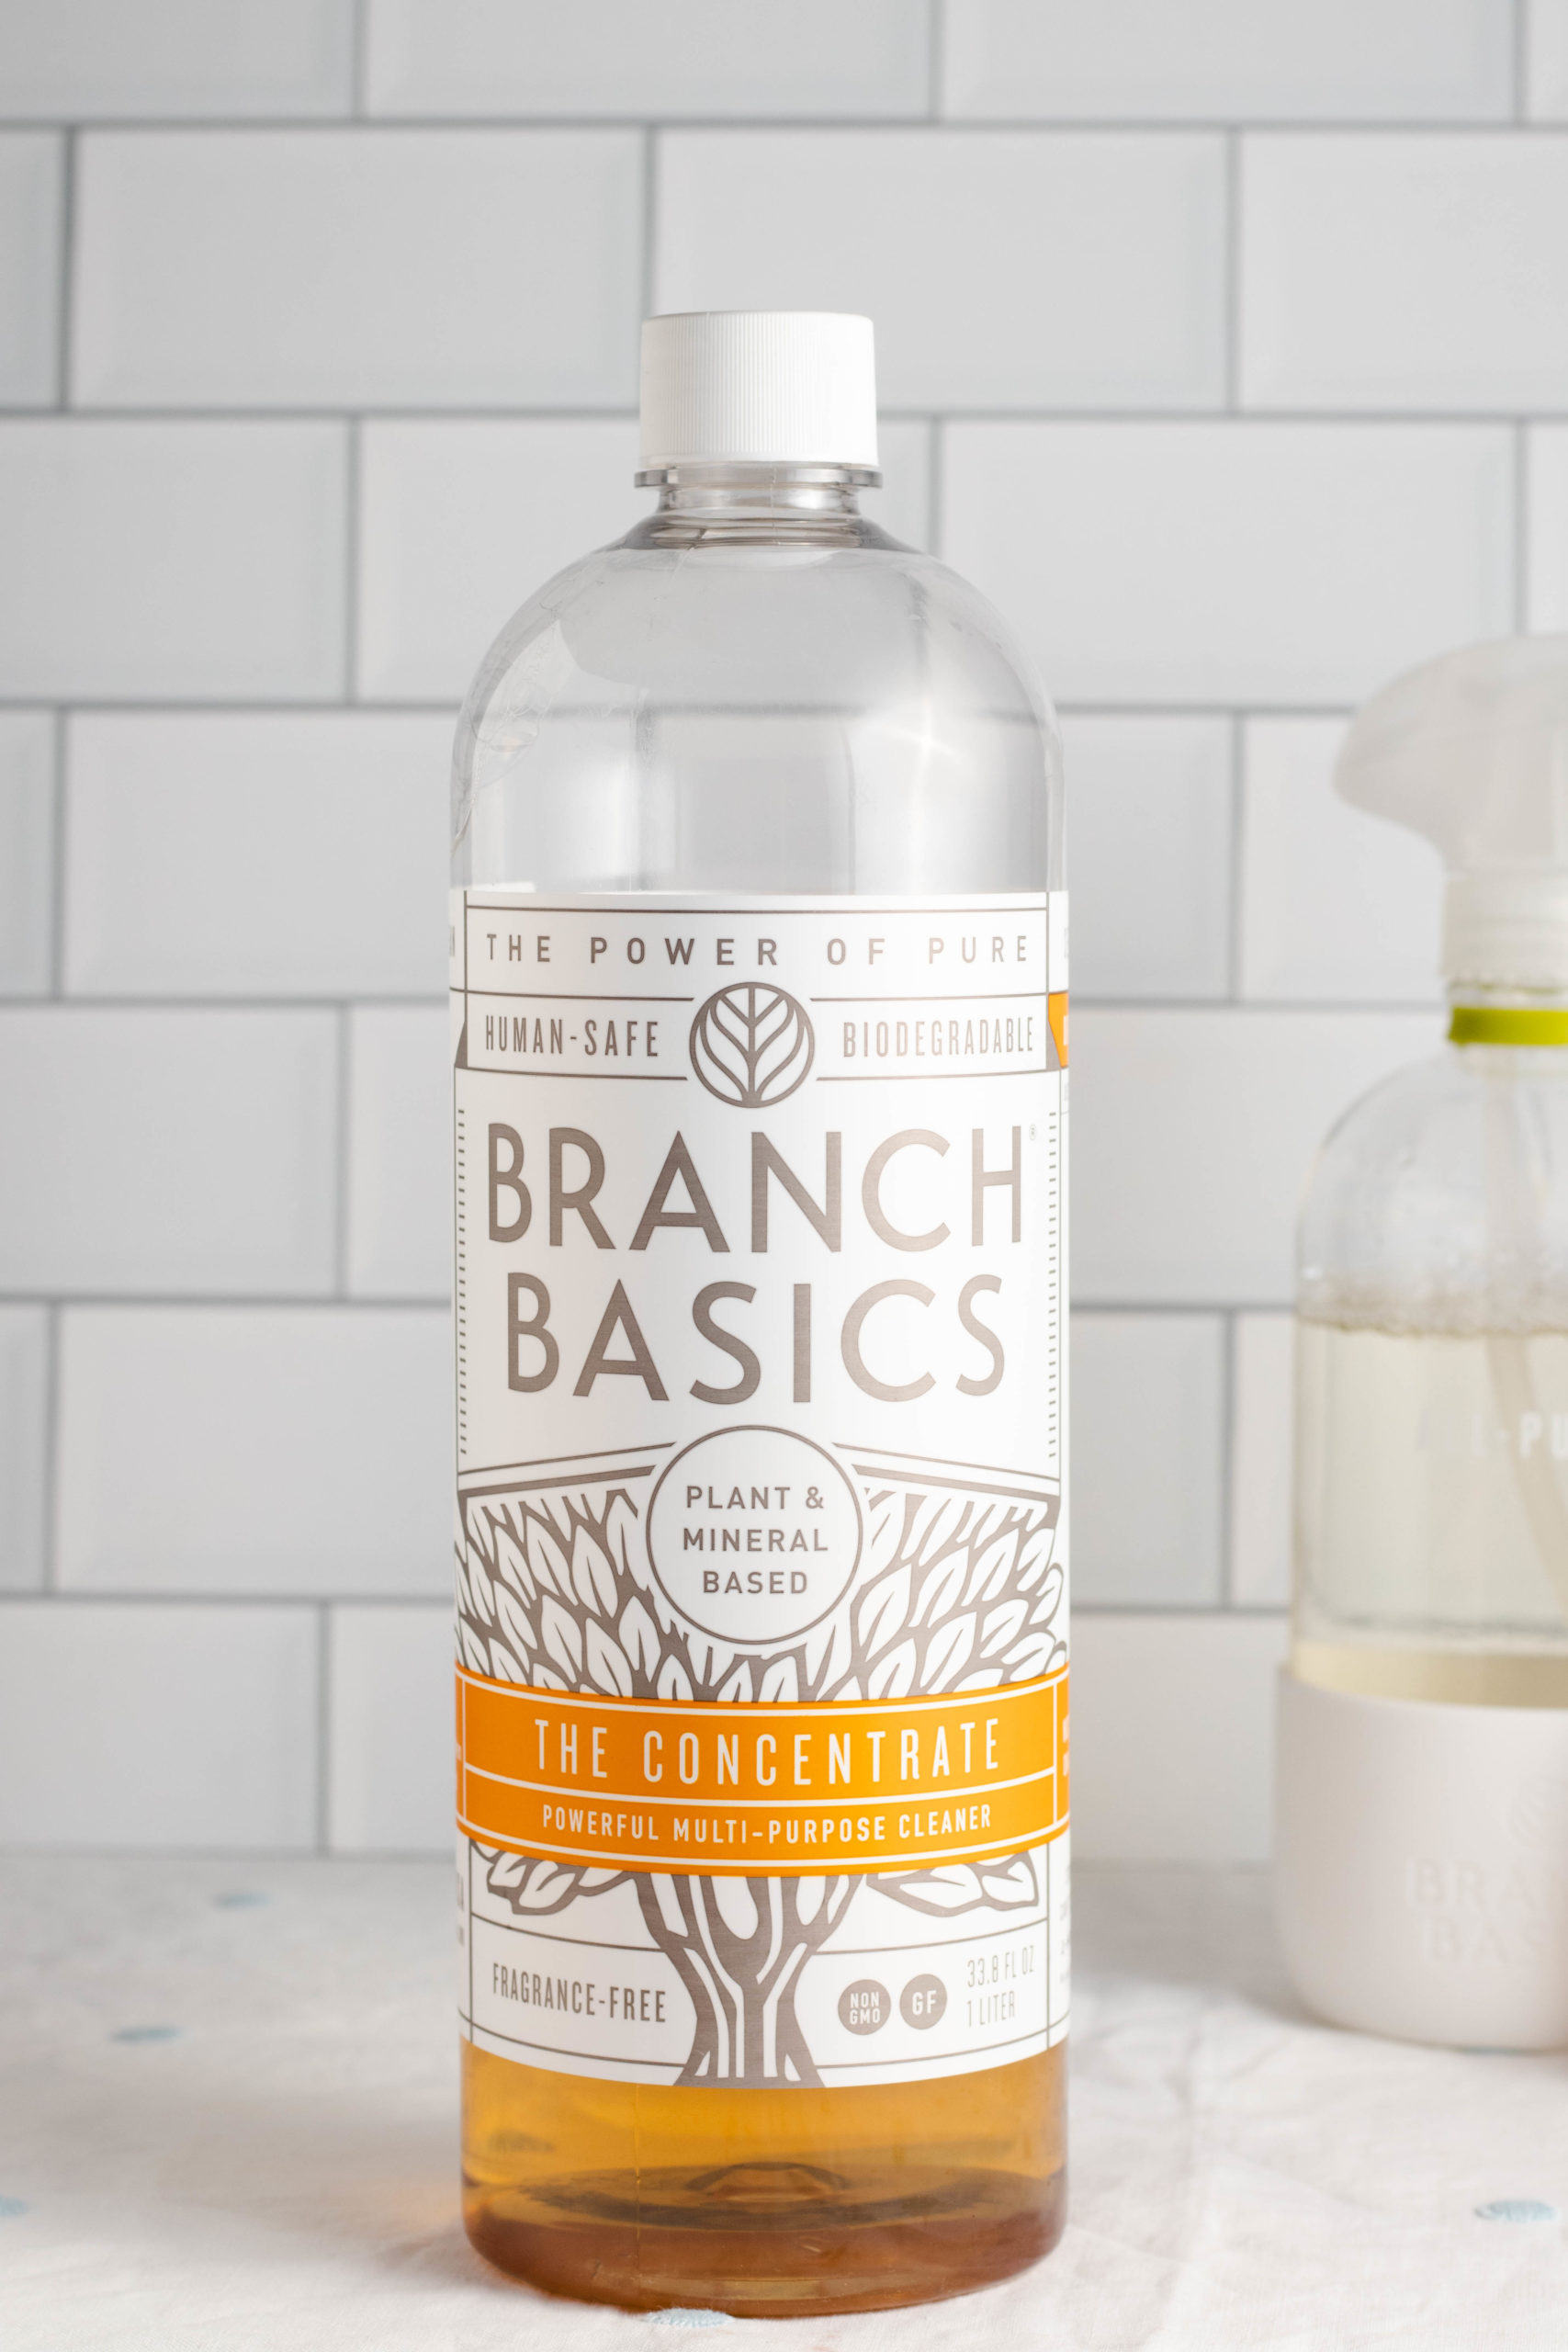 This post will give a high level overview of the difference between non toxic, natural, and safe cleaning products as well as give an honest review of Branch Basics cleaning products. If you're ready to switch to an eco-friendly home, this post is for you!